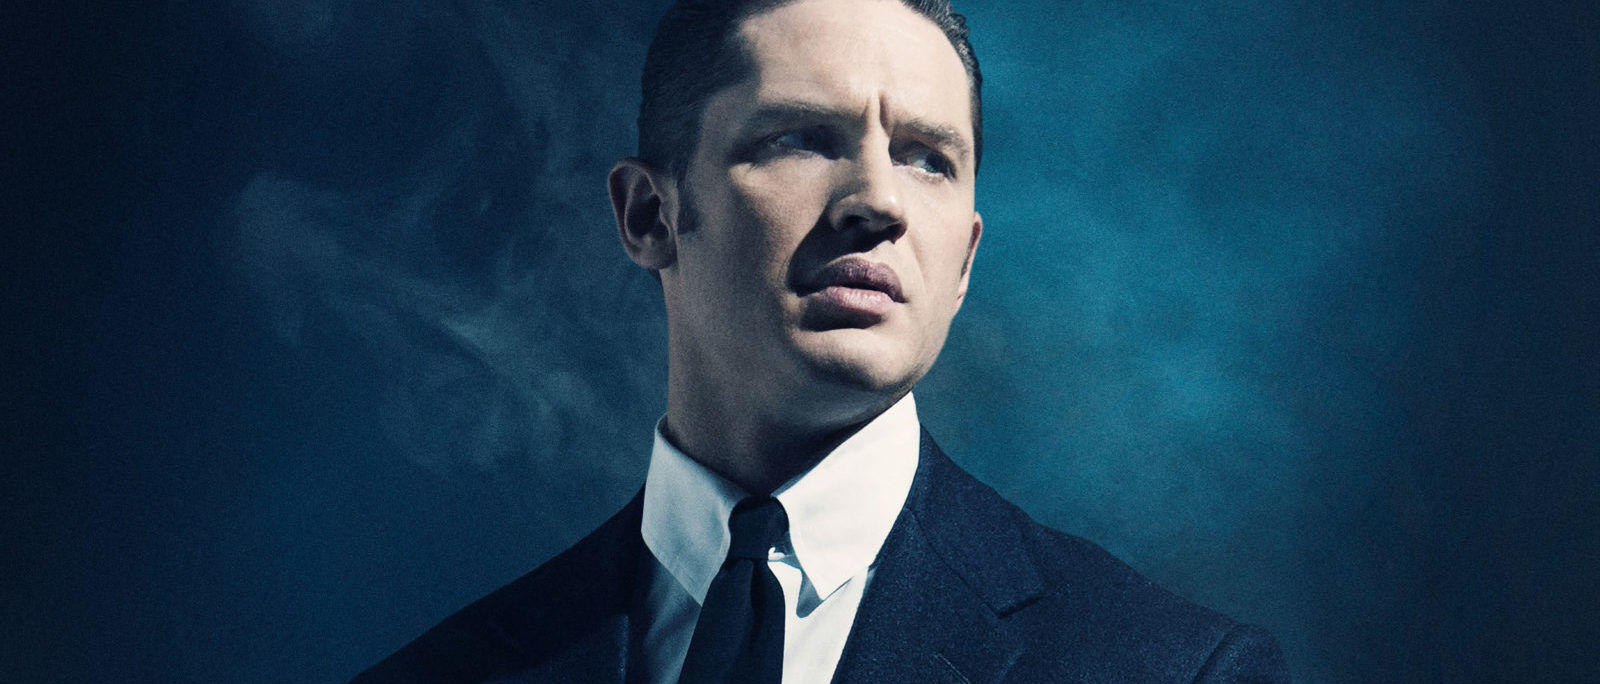 tom hardy james bond legend